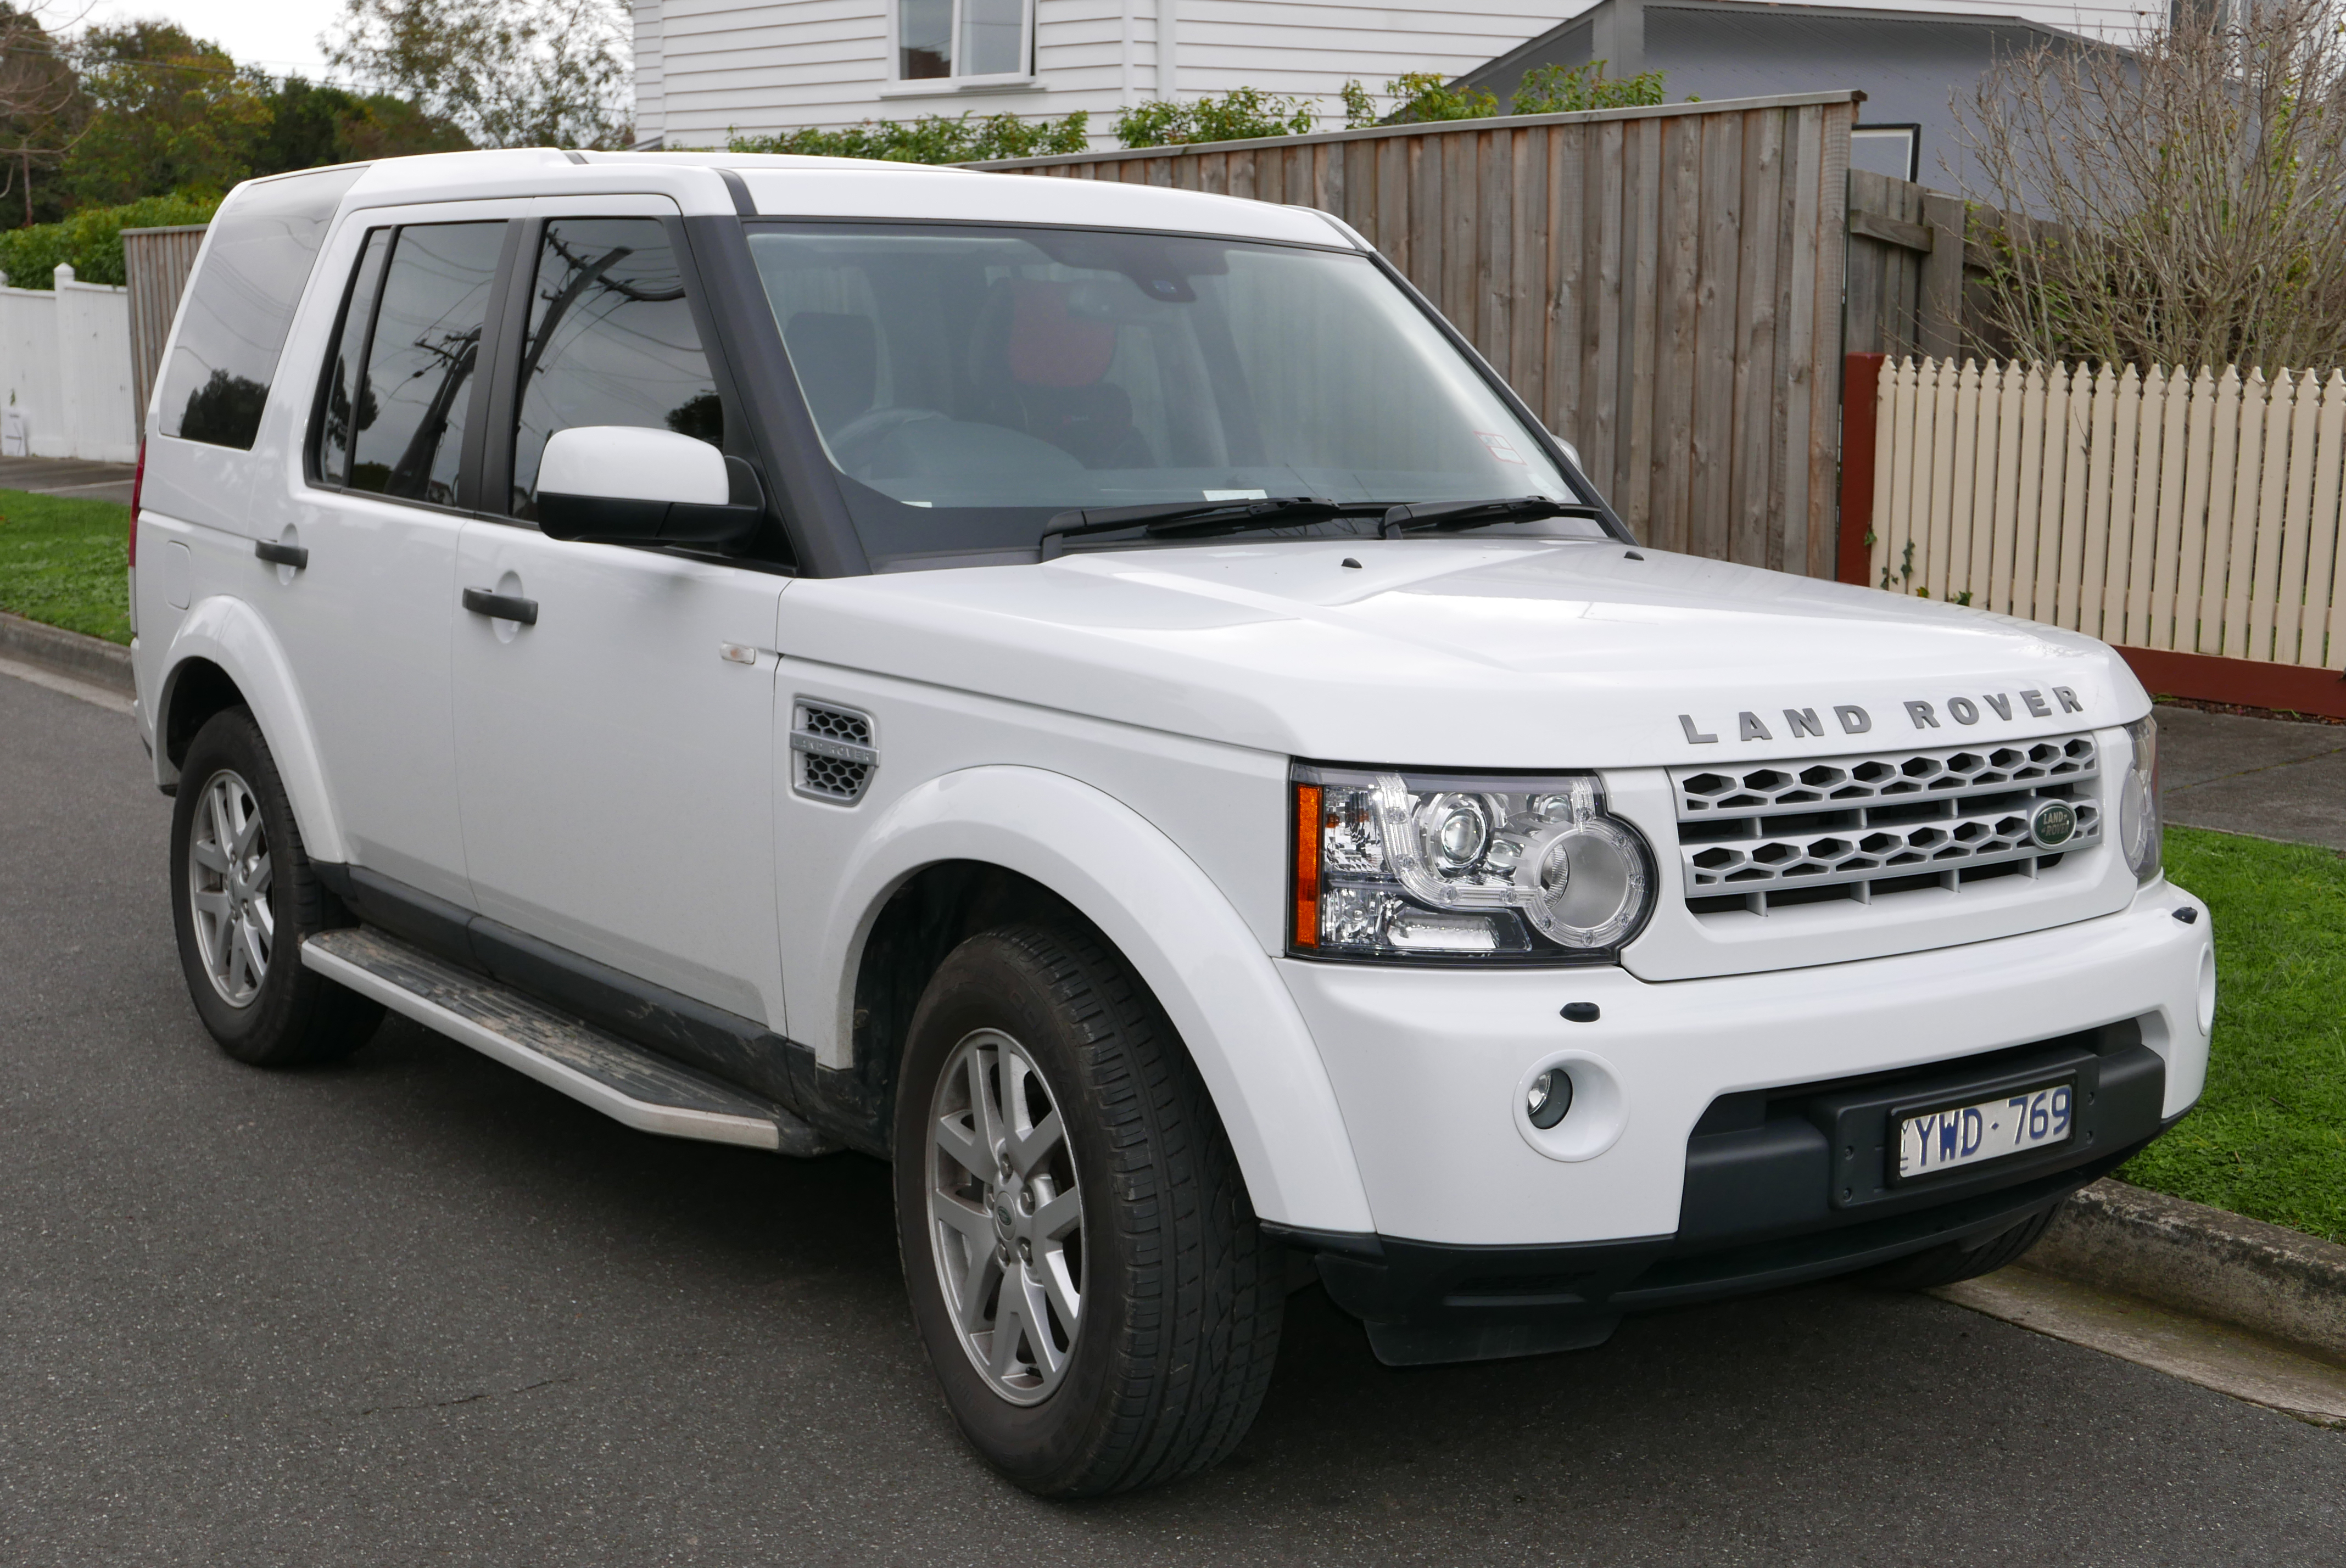 File:2012 Land Rover Discovery 4 (L319 MY12) TDV6 wagon (2015-08-07